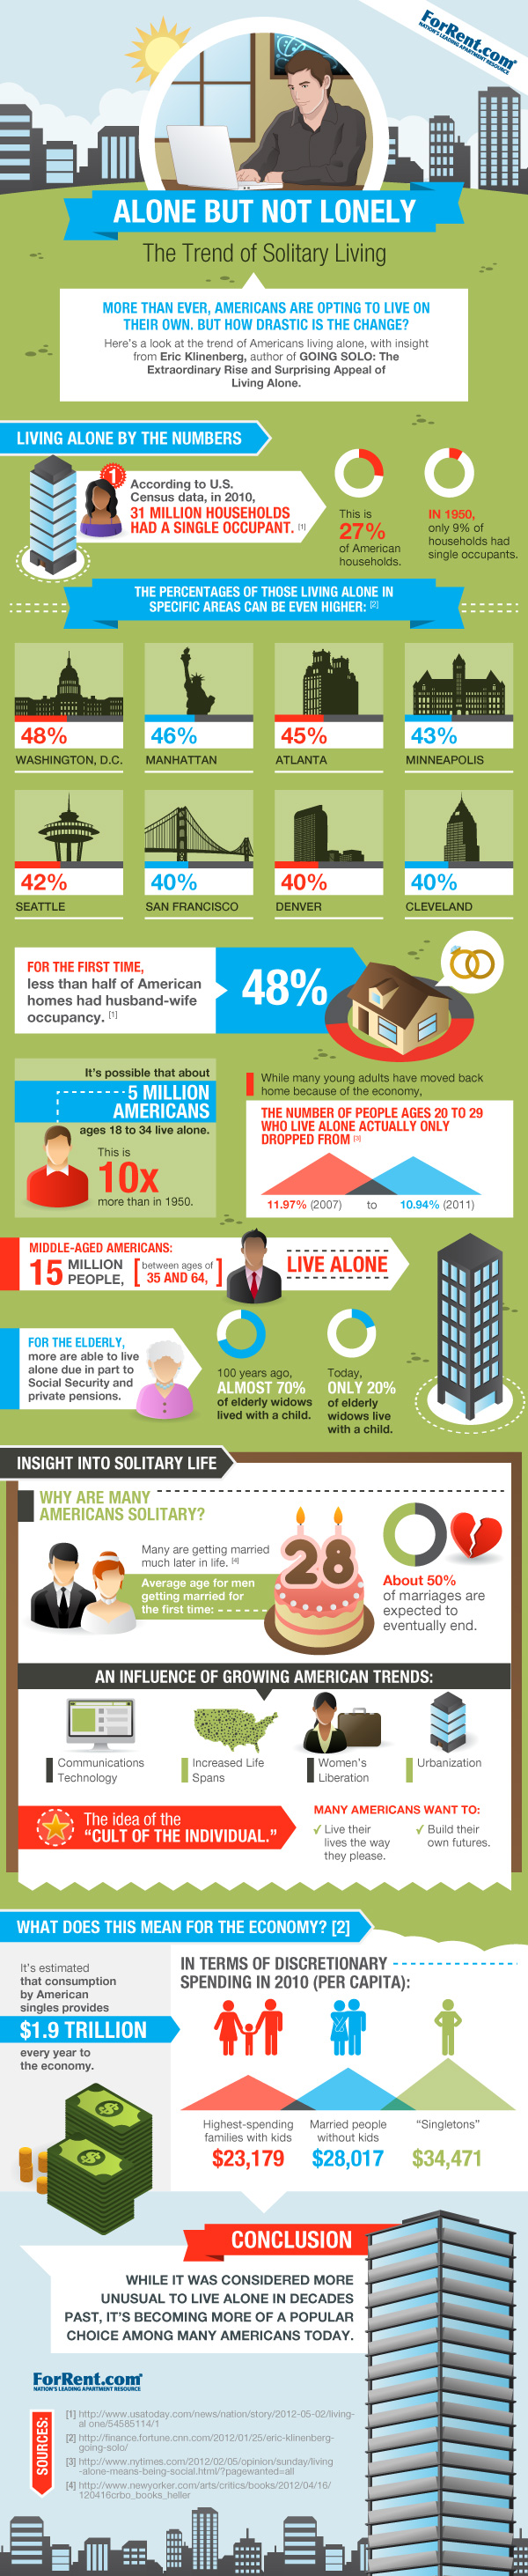 Infographic from ForRent.com